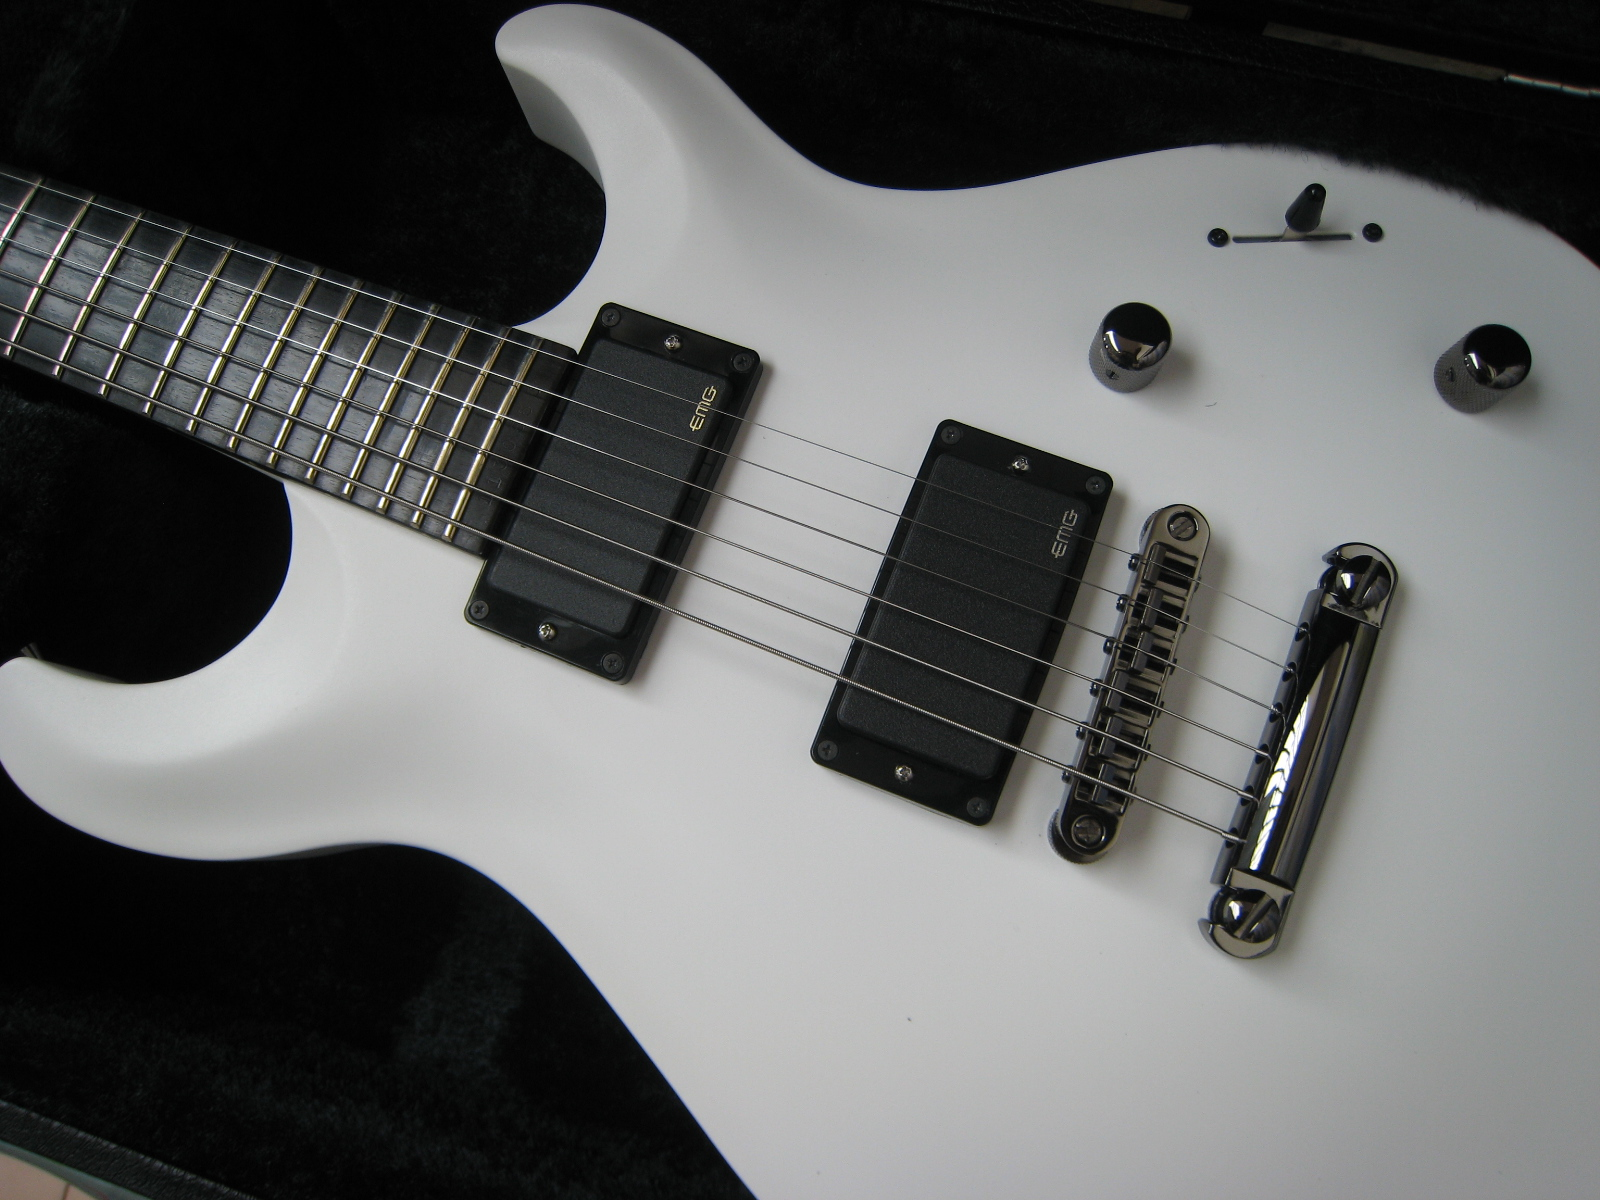 guitar gear acquisition syndrome review of caparison angelus hgs gm pro white. Black Bedroom Furniture Sets. Home Design Ideas